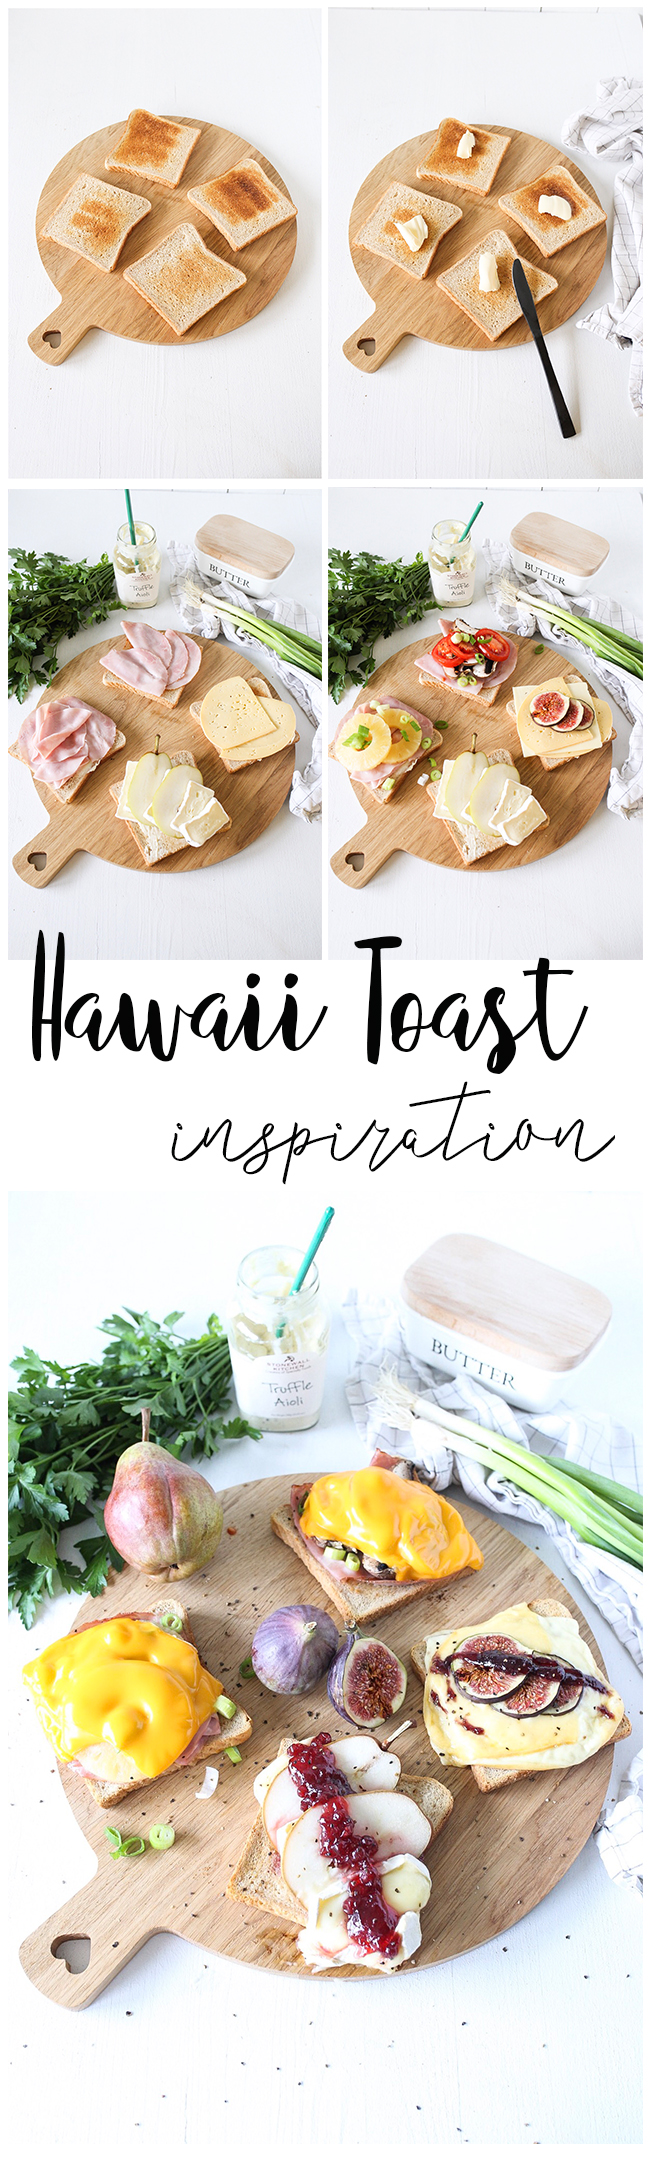 Toast Hawaii Inspirationen